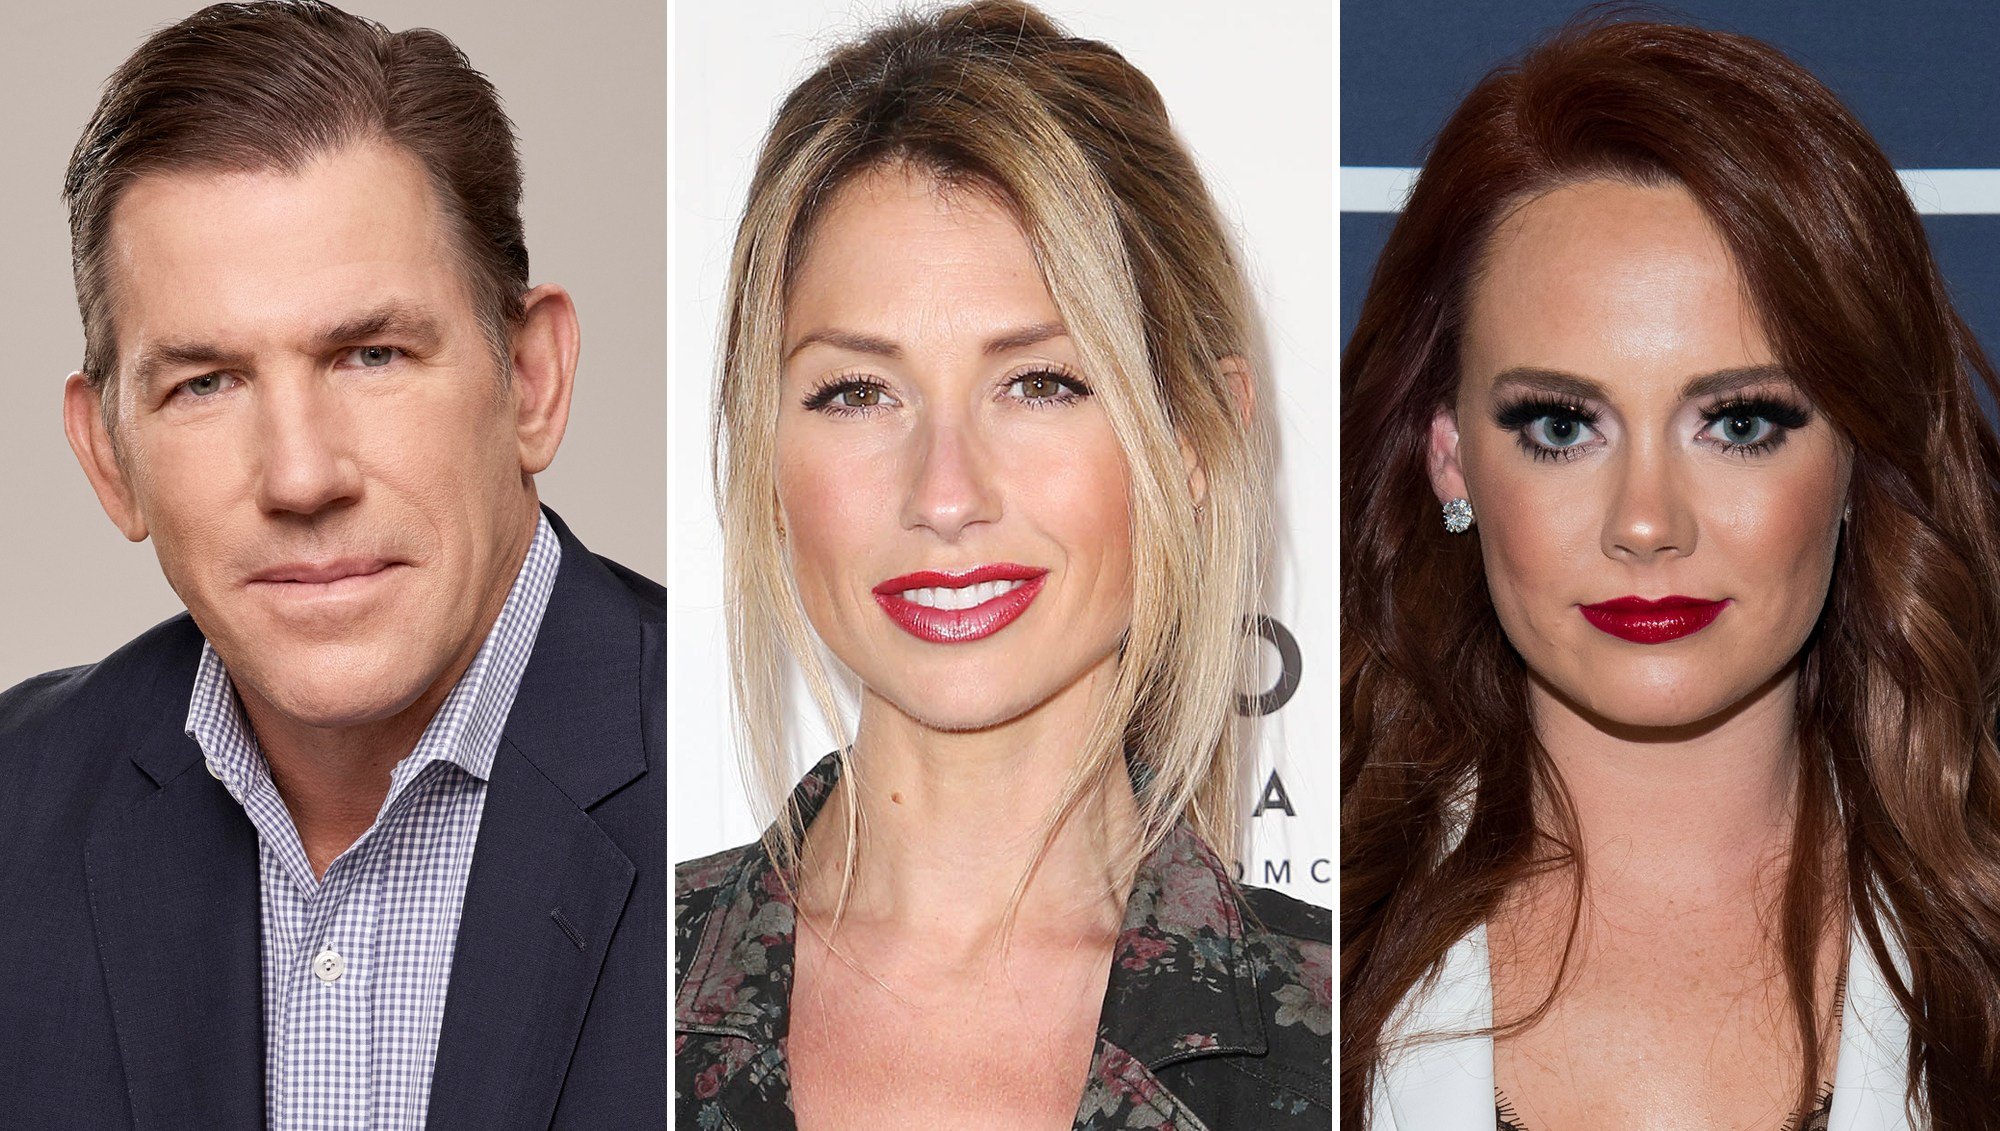 Thomas Ravenel Ashley Jacobs Kathryn Dennis